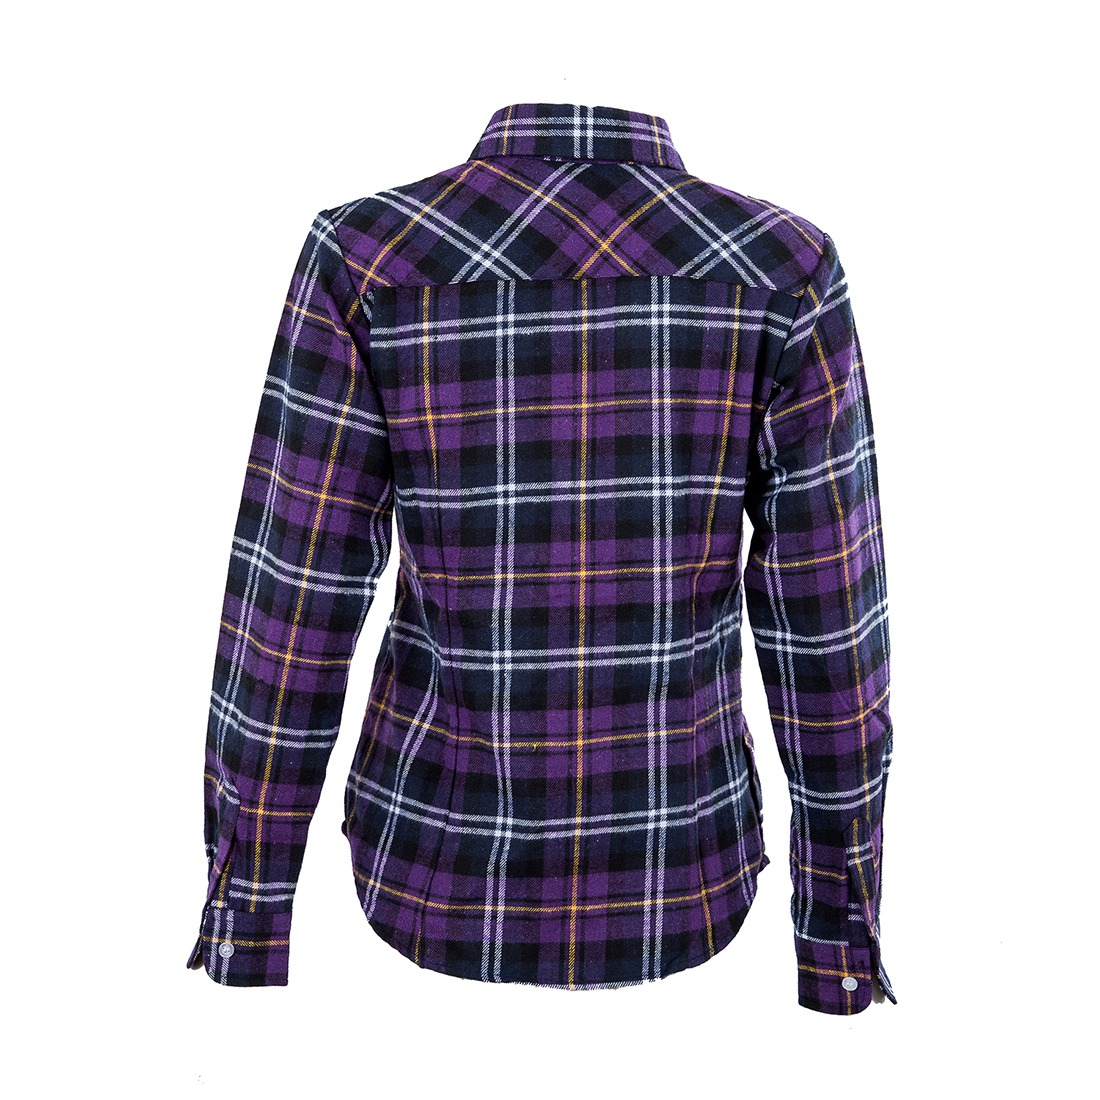 Womens shirt flannel shirts tops blouse purple white xl for White and black flannel shirt womens